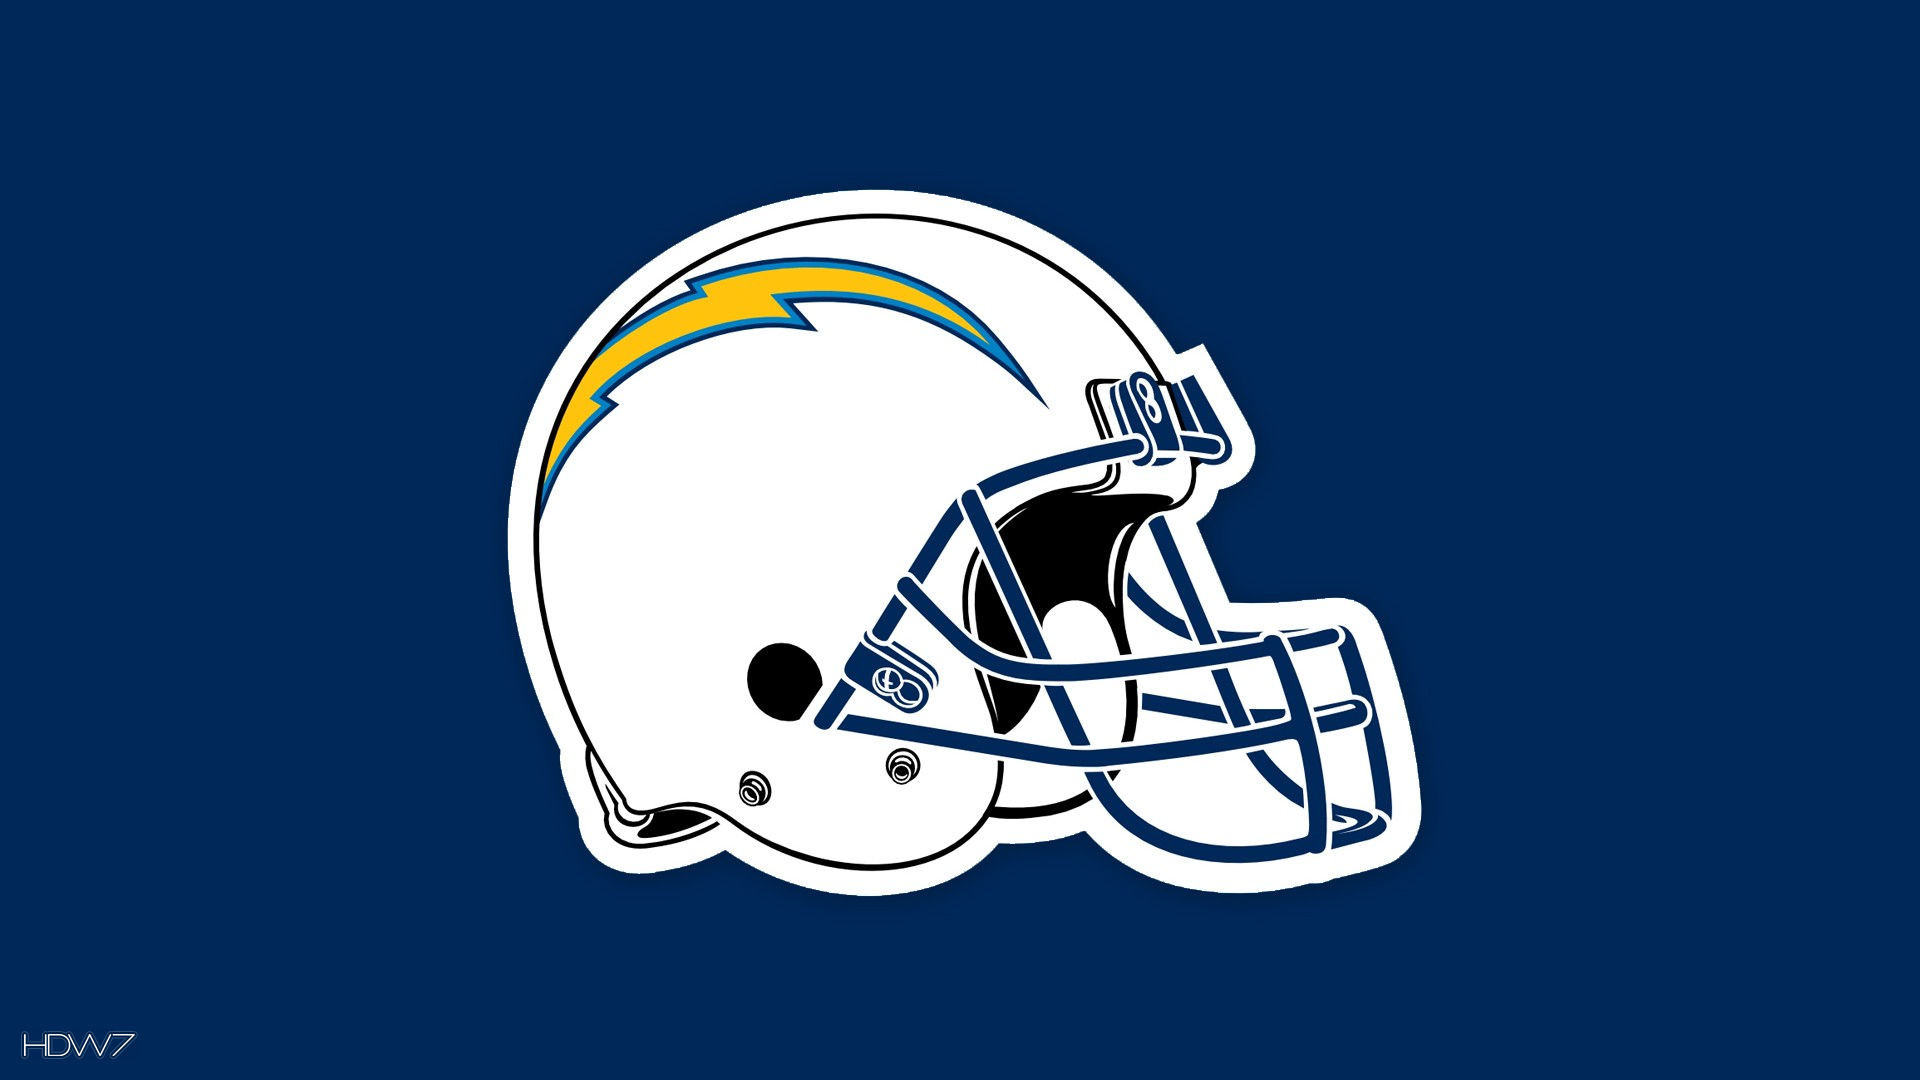 1920x1080 san diego chargers logo HD wallpaper gallery 143